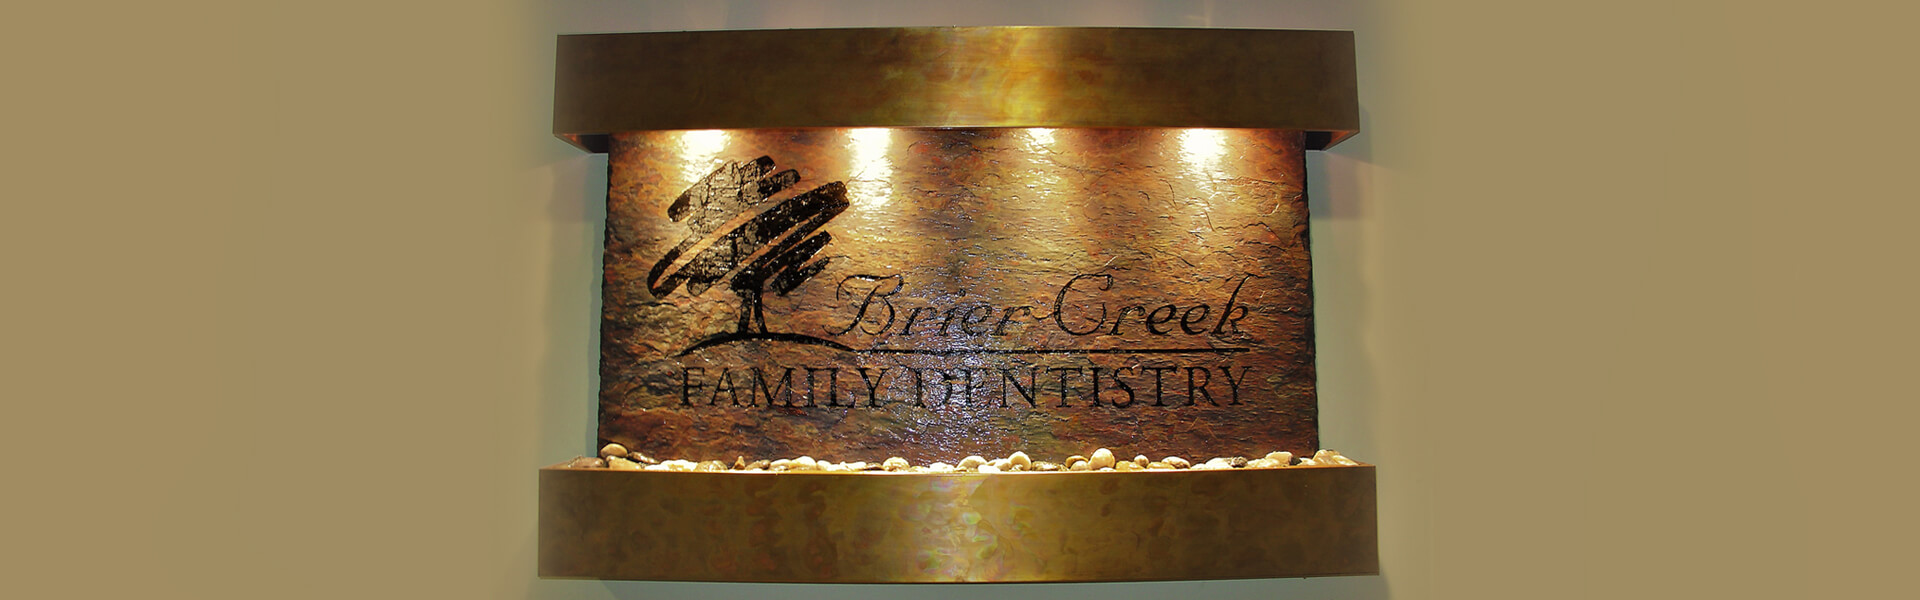 About Brier Creek Family Dentistry